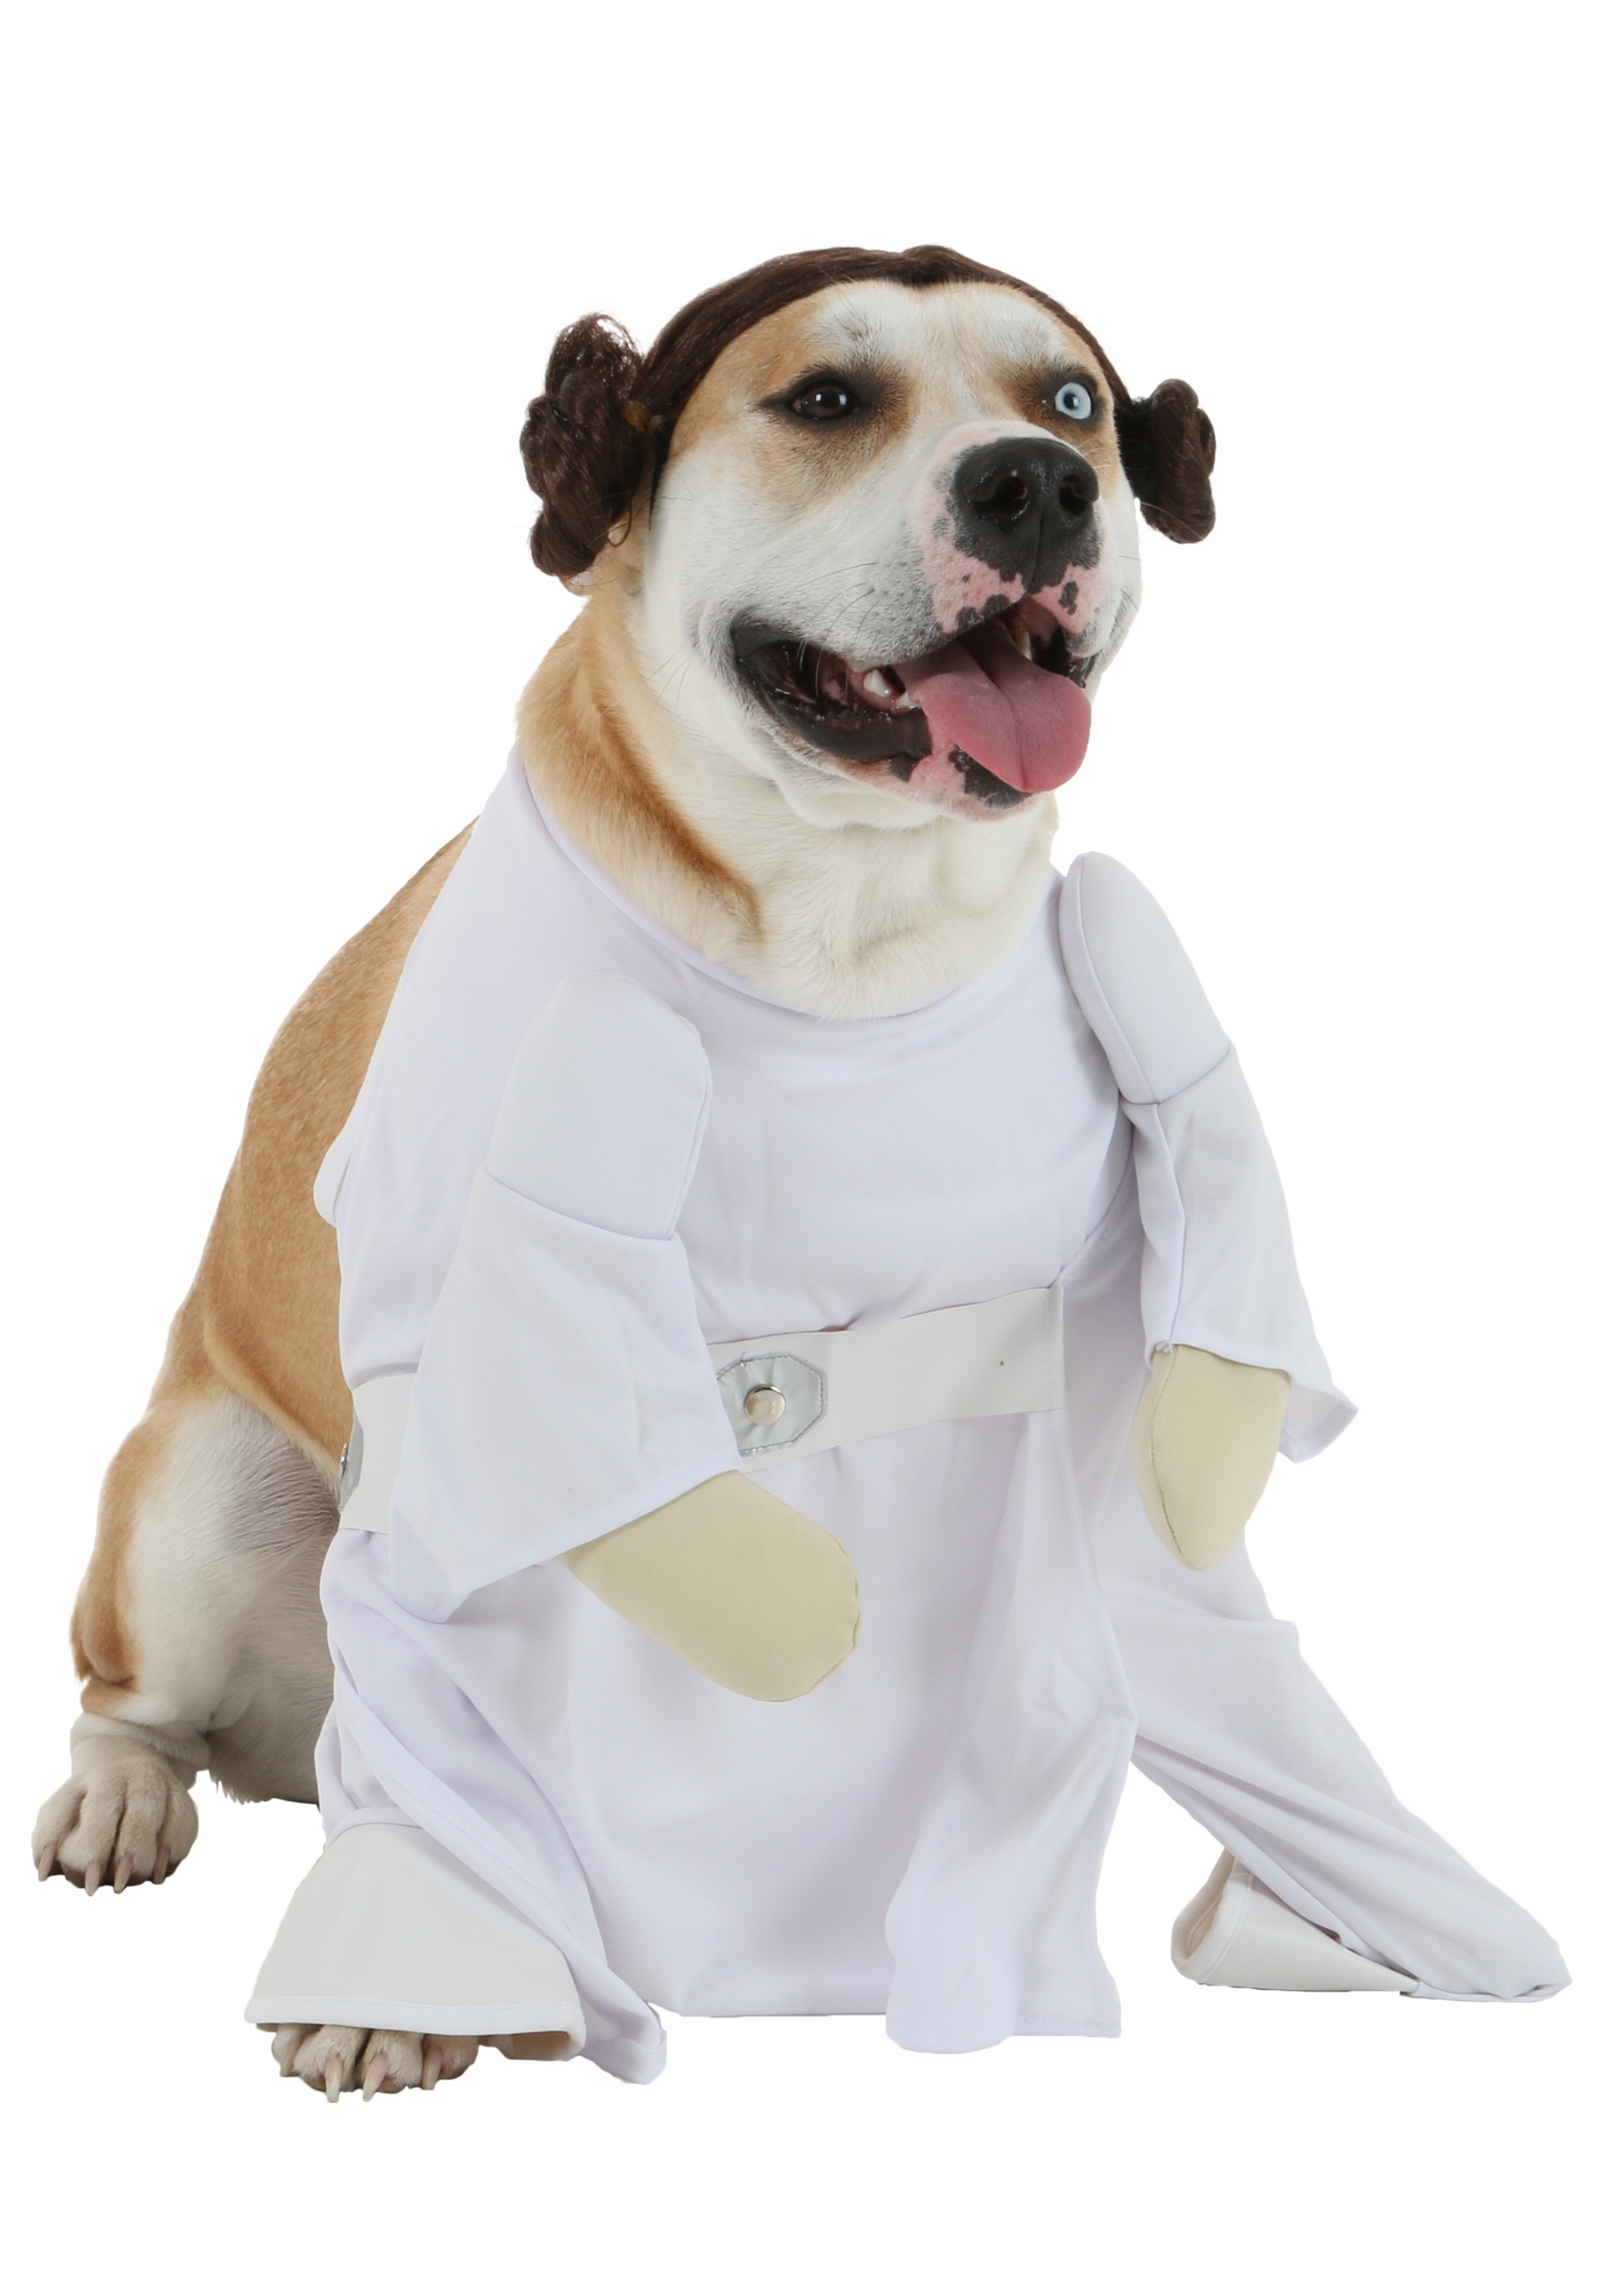 Princess Leia Dog Costume | Car Interior Design Jabba The Hutt Costume For Dogs